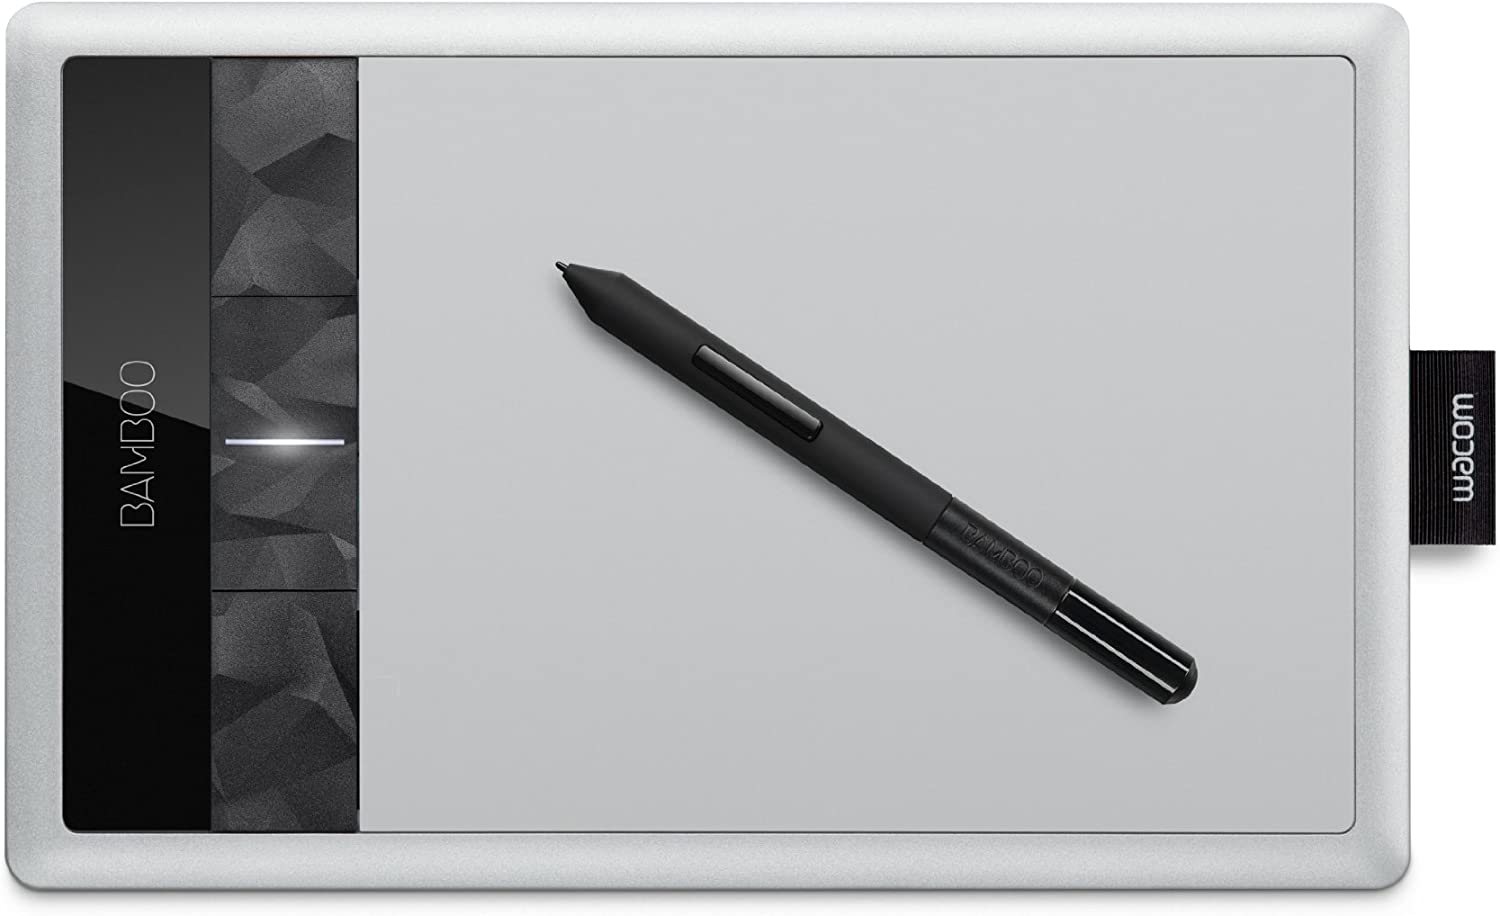 CTH470 Wacom Bamboo Capture Pen and Touch Tablet